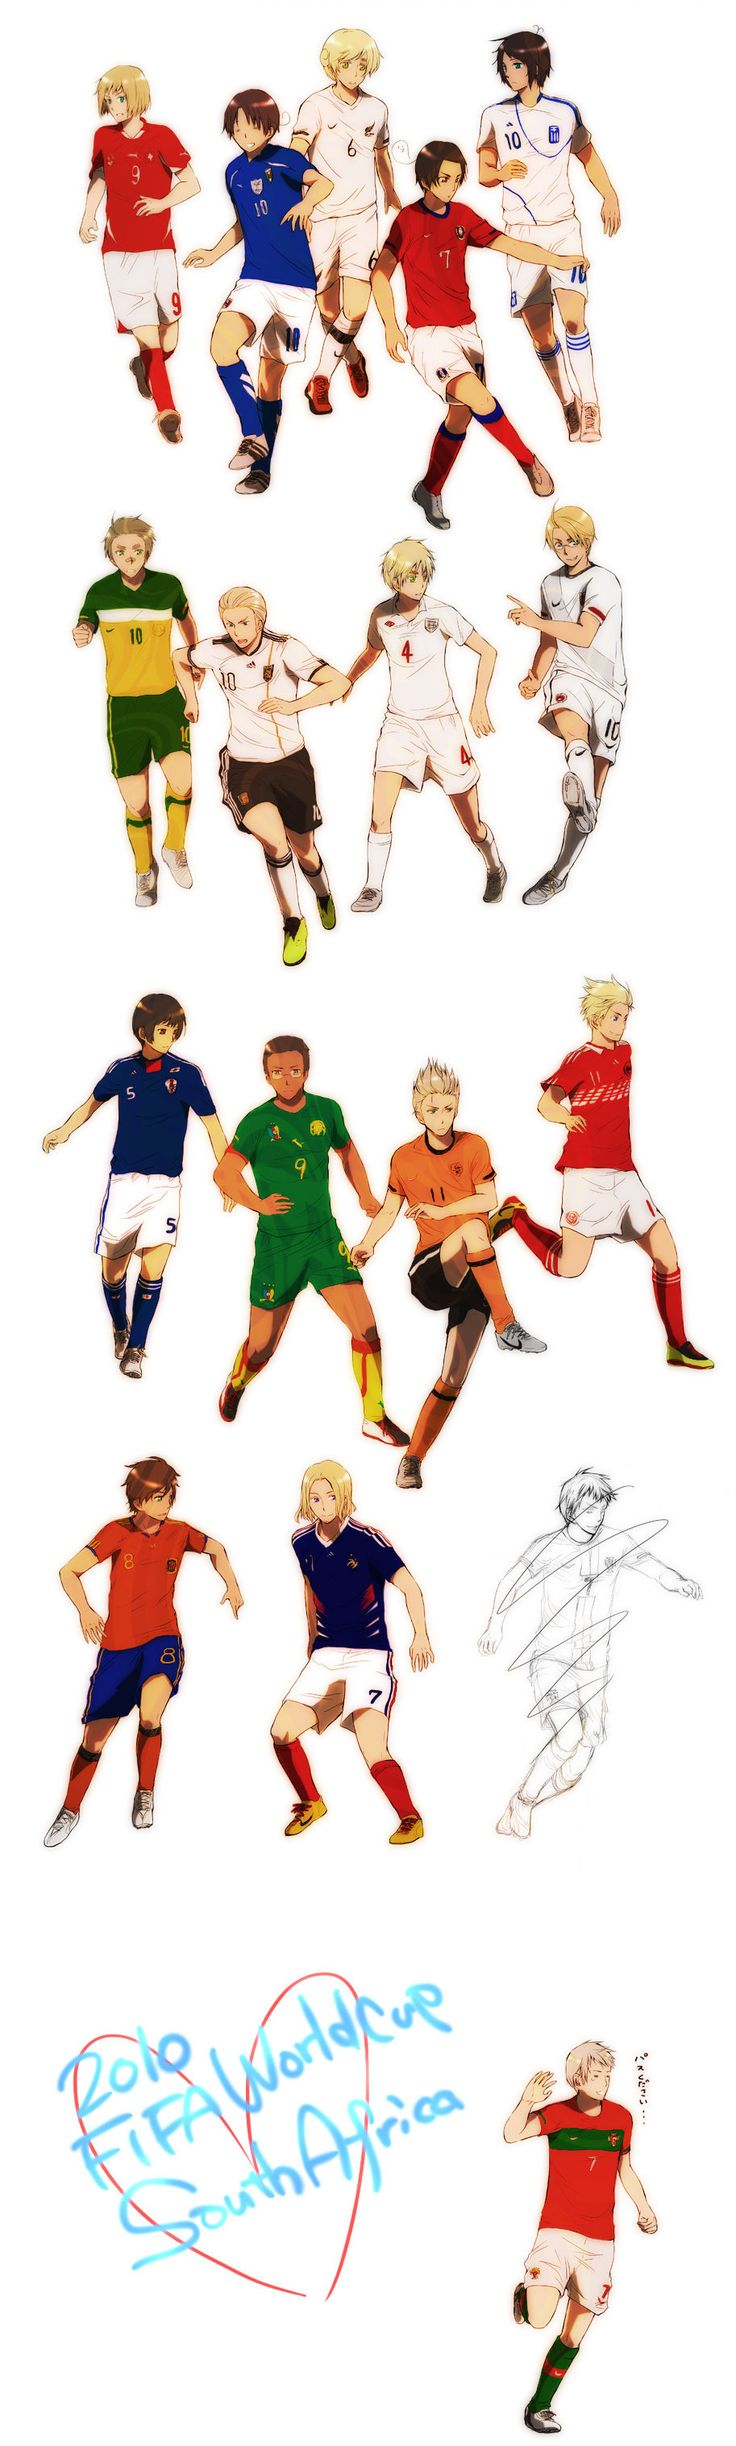 Hetalia omg it makes it so much easier to recognize them in not a soccer person so I didn't know when I was like a similar uniform